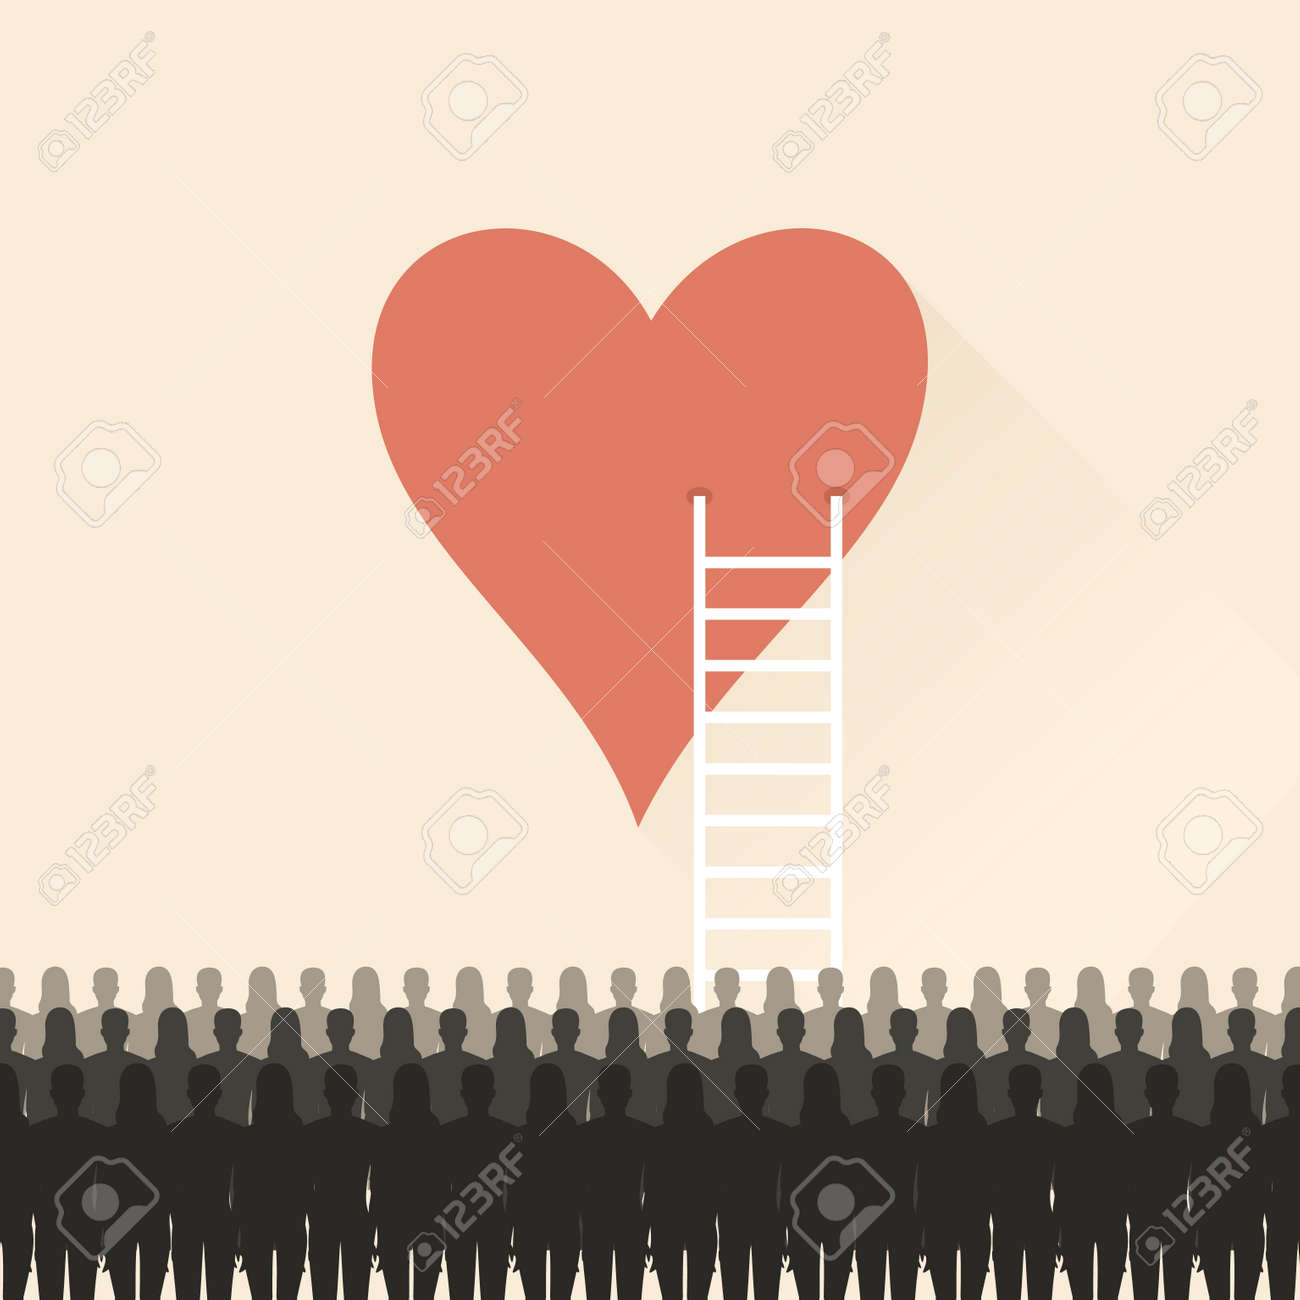 Stairs to the heart. - 62247259